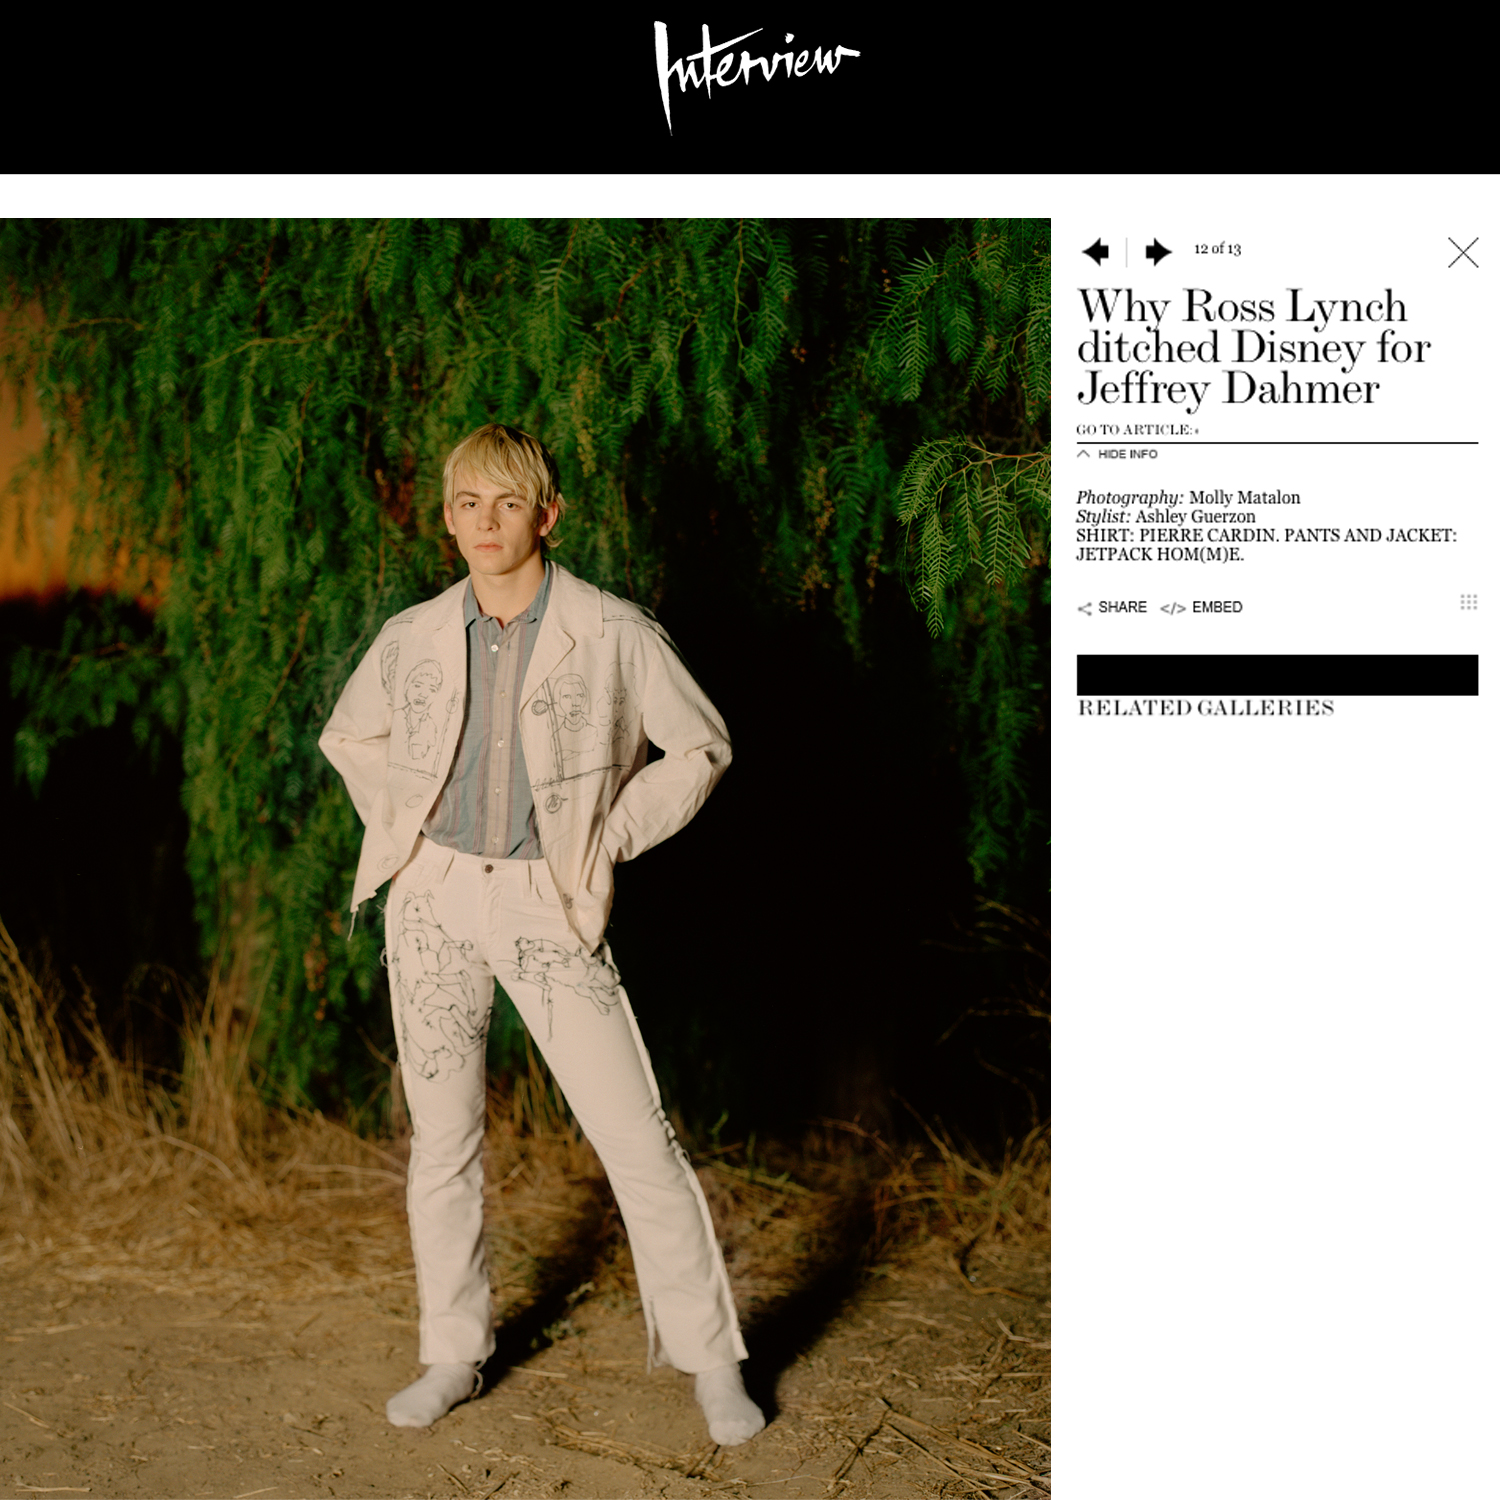 ROSSlynch_INTERVIEWmag Mockup 4.jpg